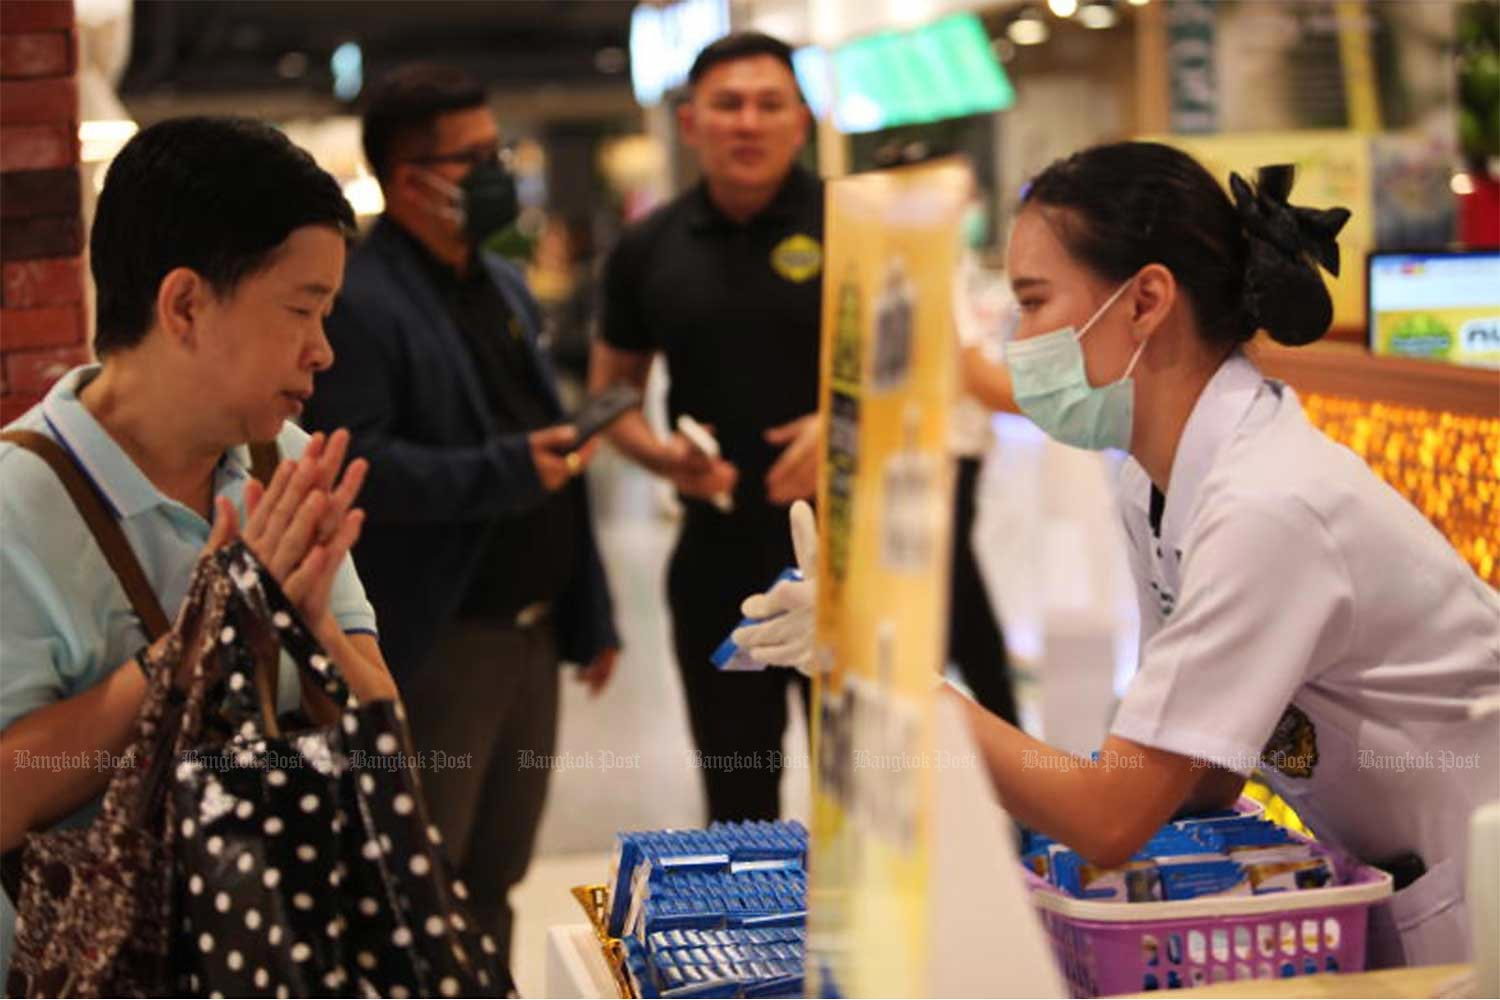 An employee of Tumrubthai herbal shop hands out fah talai jone herbal medicine to people at CentralWorld shopping mall on March 6 last year. Each person is given one pack of the drug for free. (Photo by Apichart Jinakul)